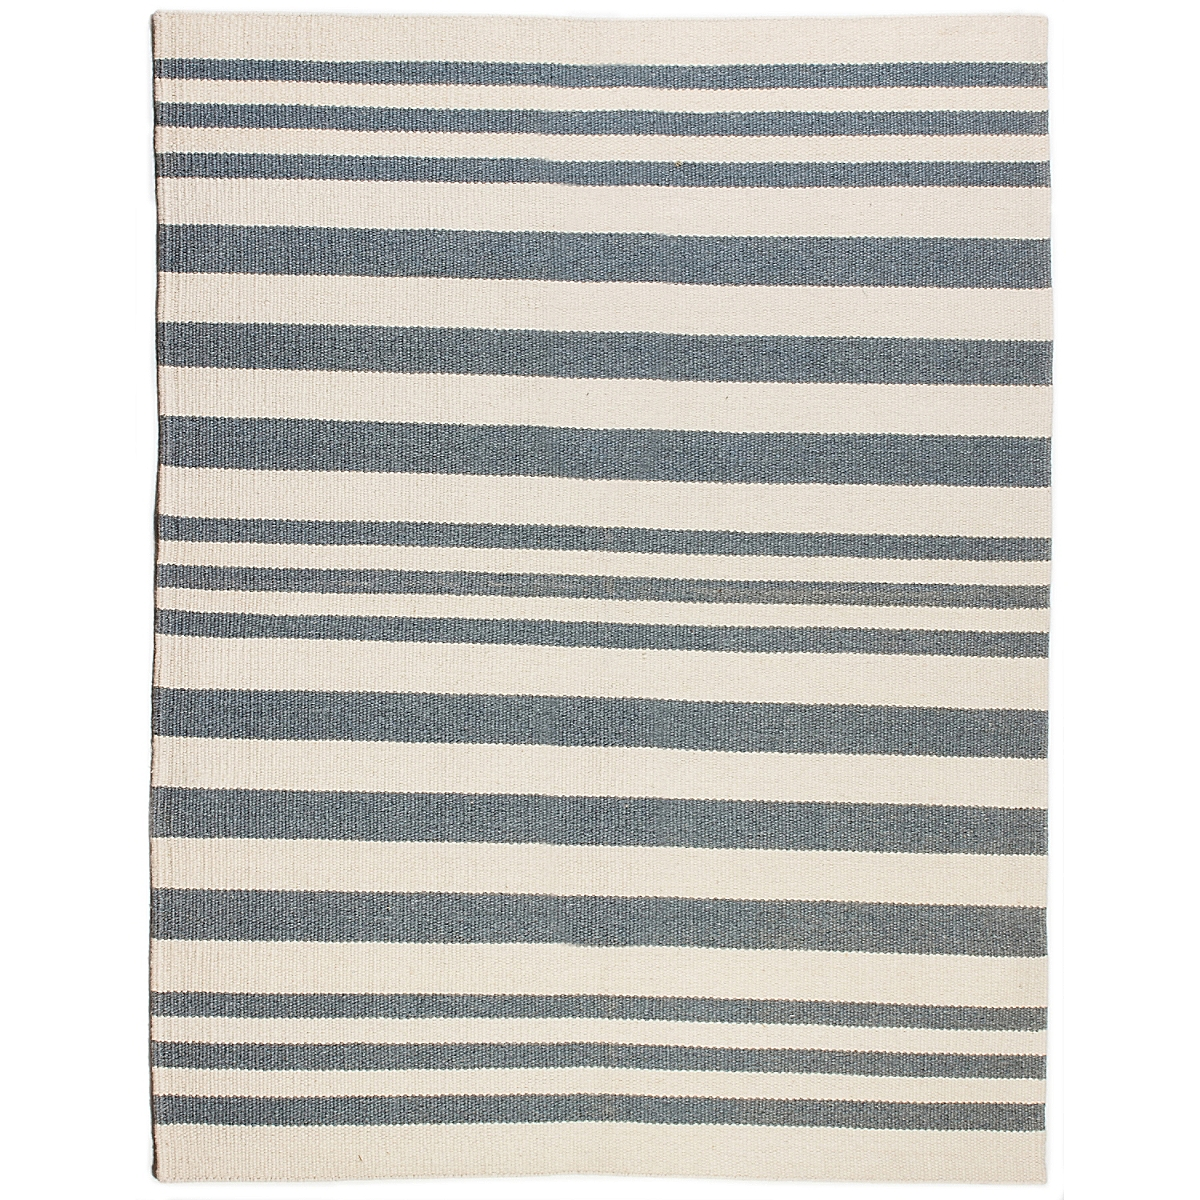 Cape Elizabeth Wool Berber Striped Rug